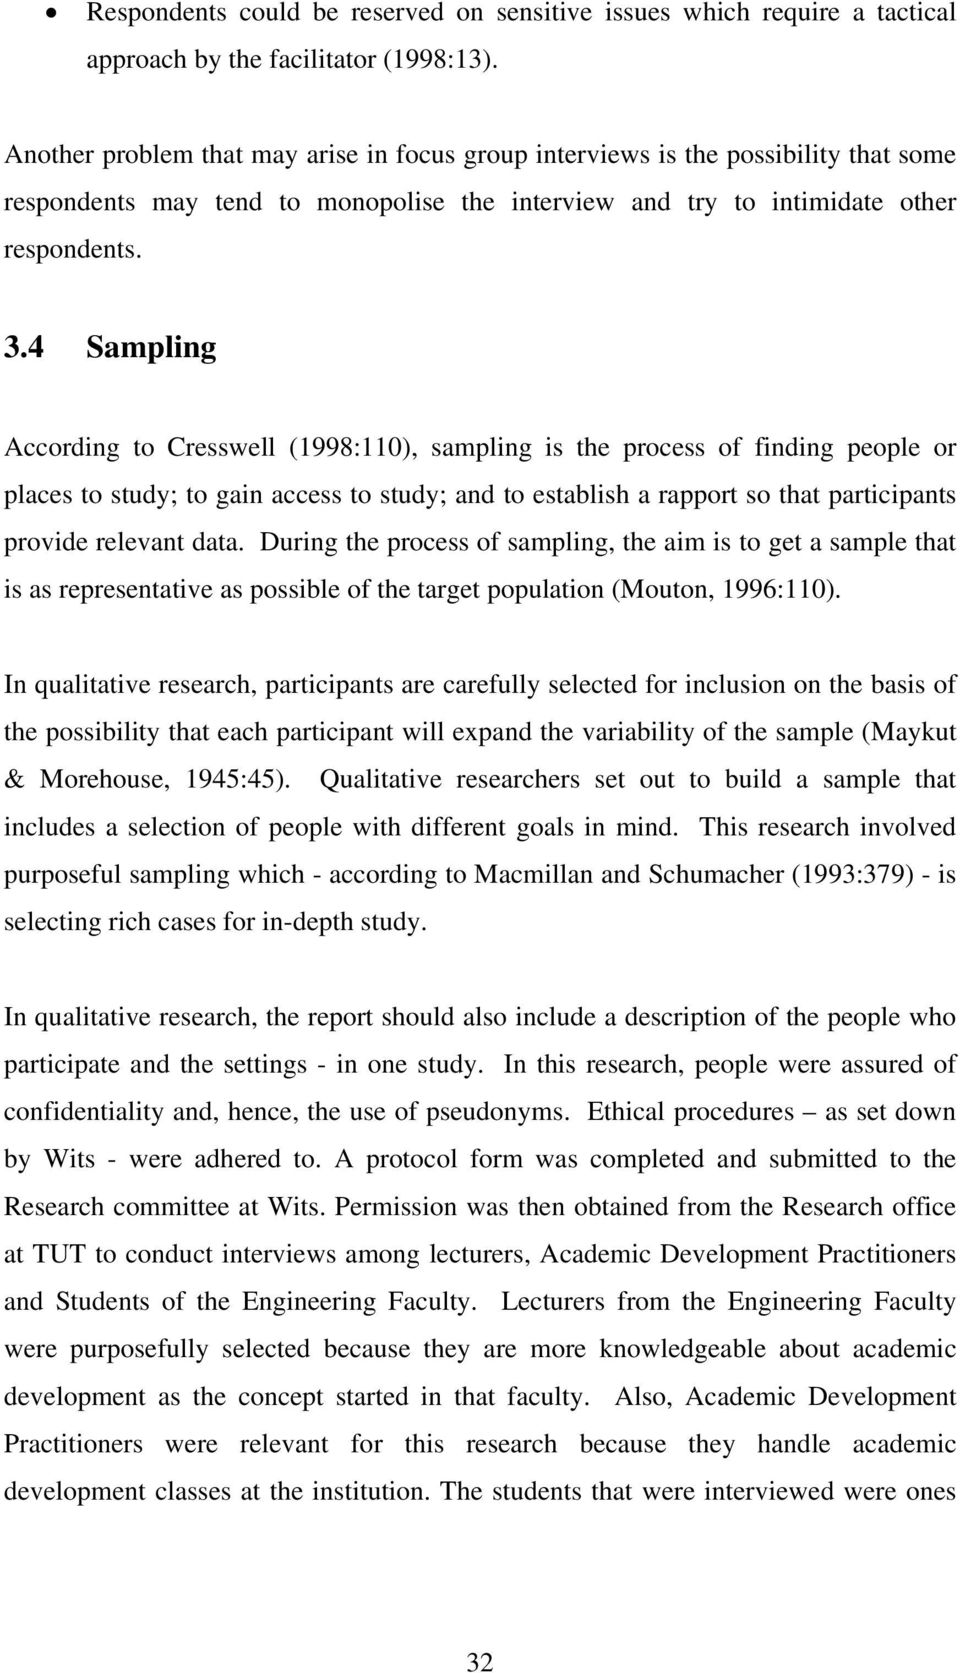 4 Sampling According to Cresswell (1998:110), sampling is the process of finding people or places to study; to gain access to study; and to establish a rapport so that participants provide relevant